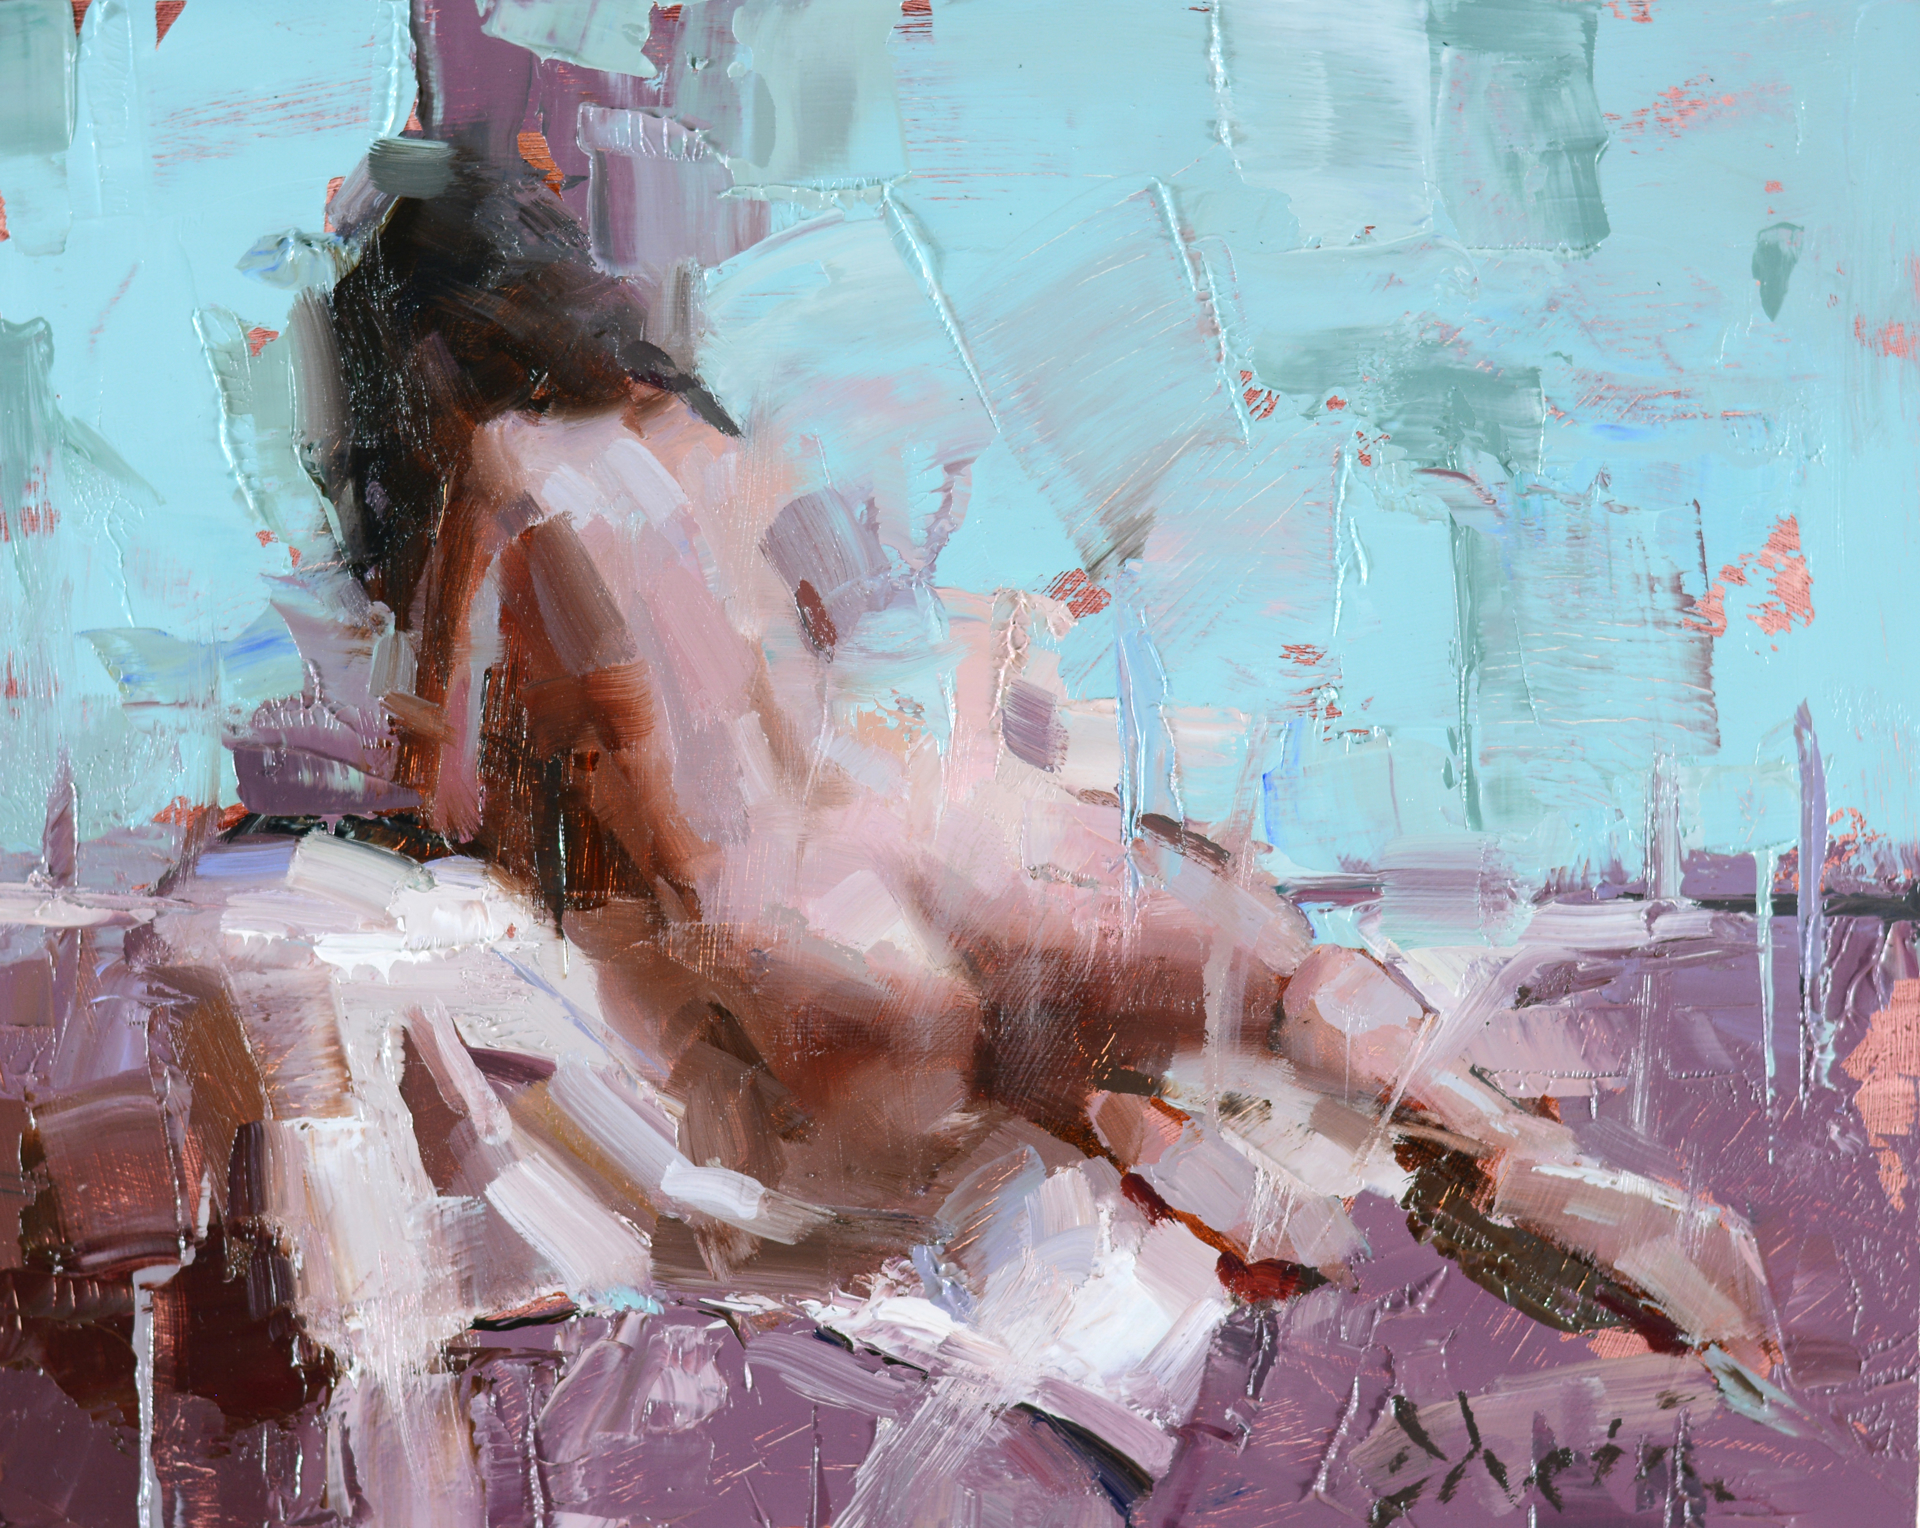 Nude Study 2 by Jacob Dhein